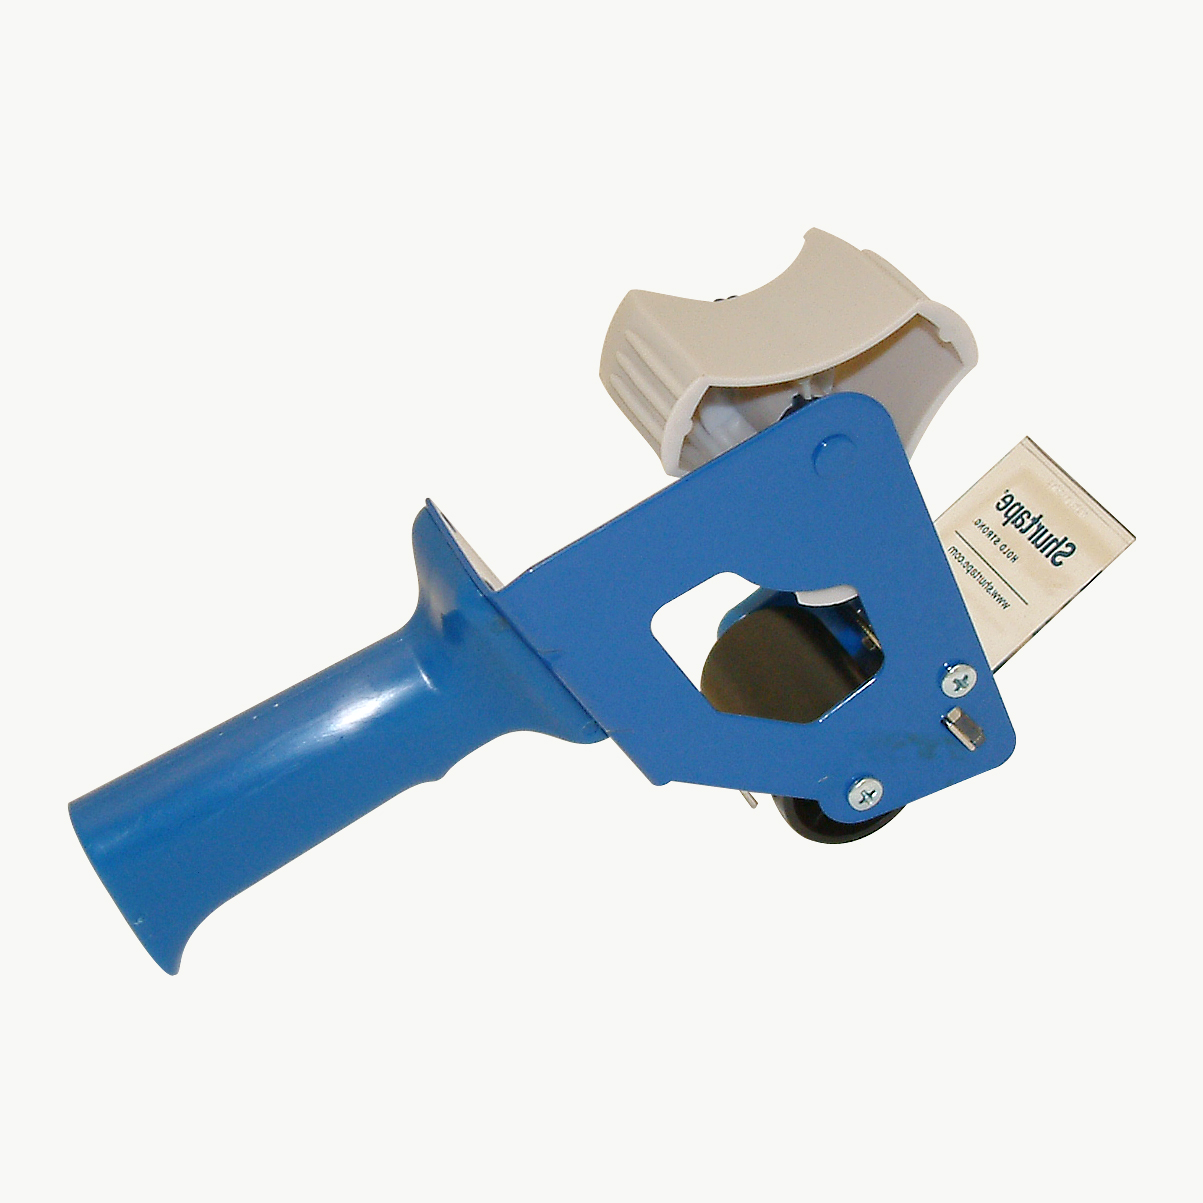 JVCC CSD Carton Sealing Tape Dispenser: 2 in. wide (Blue)